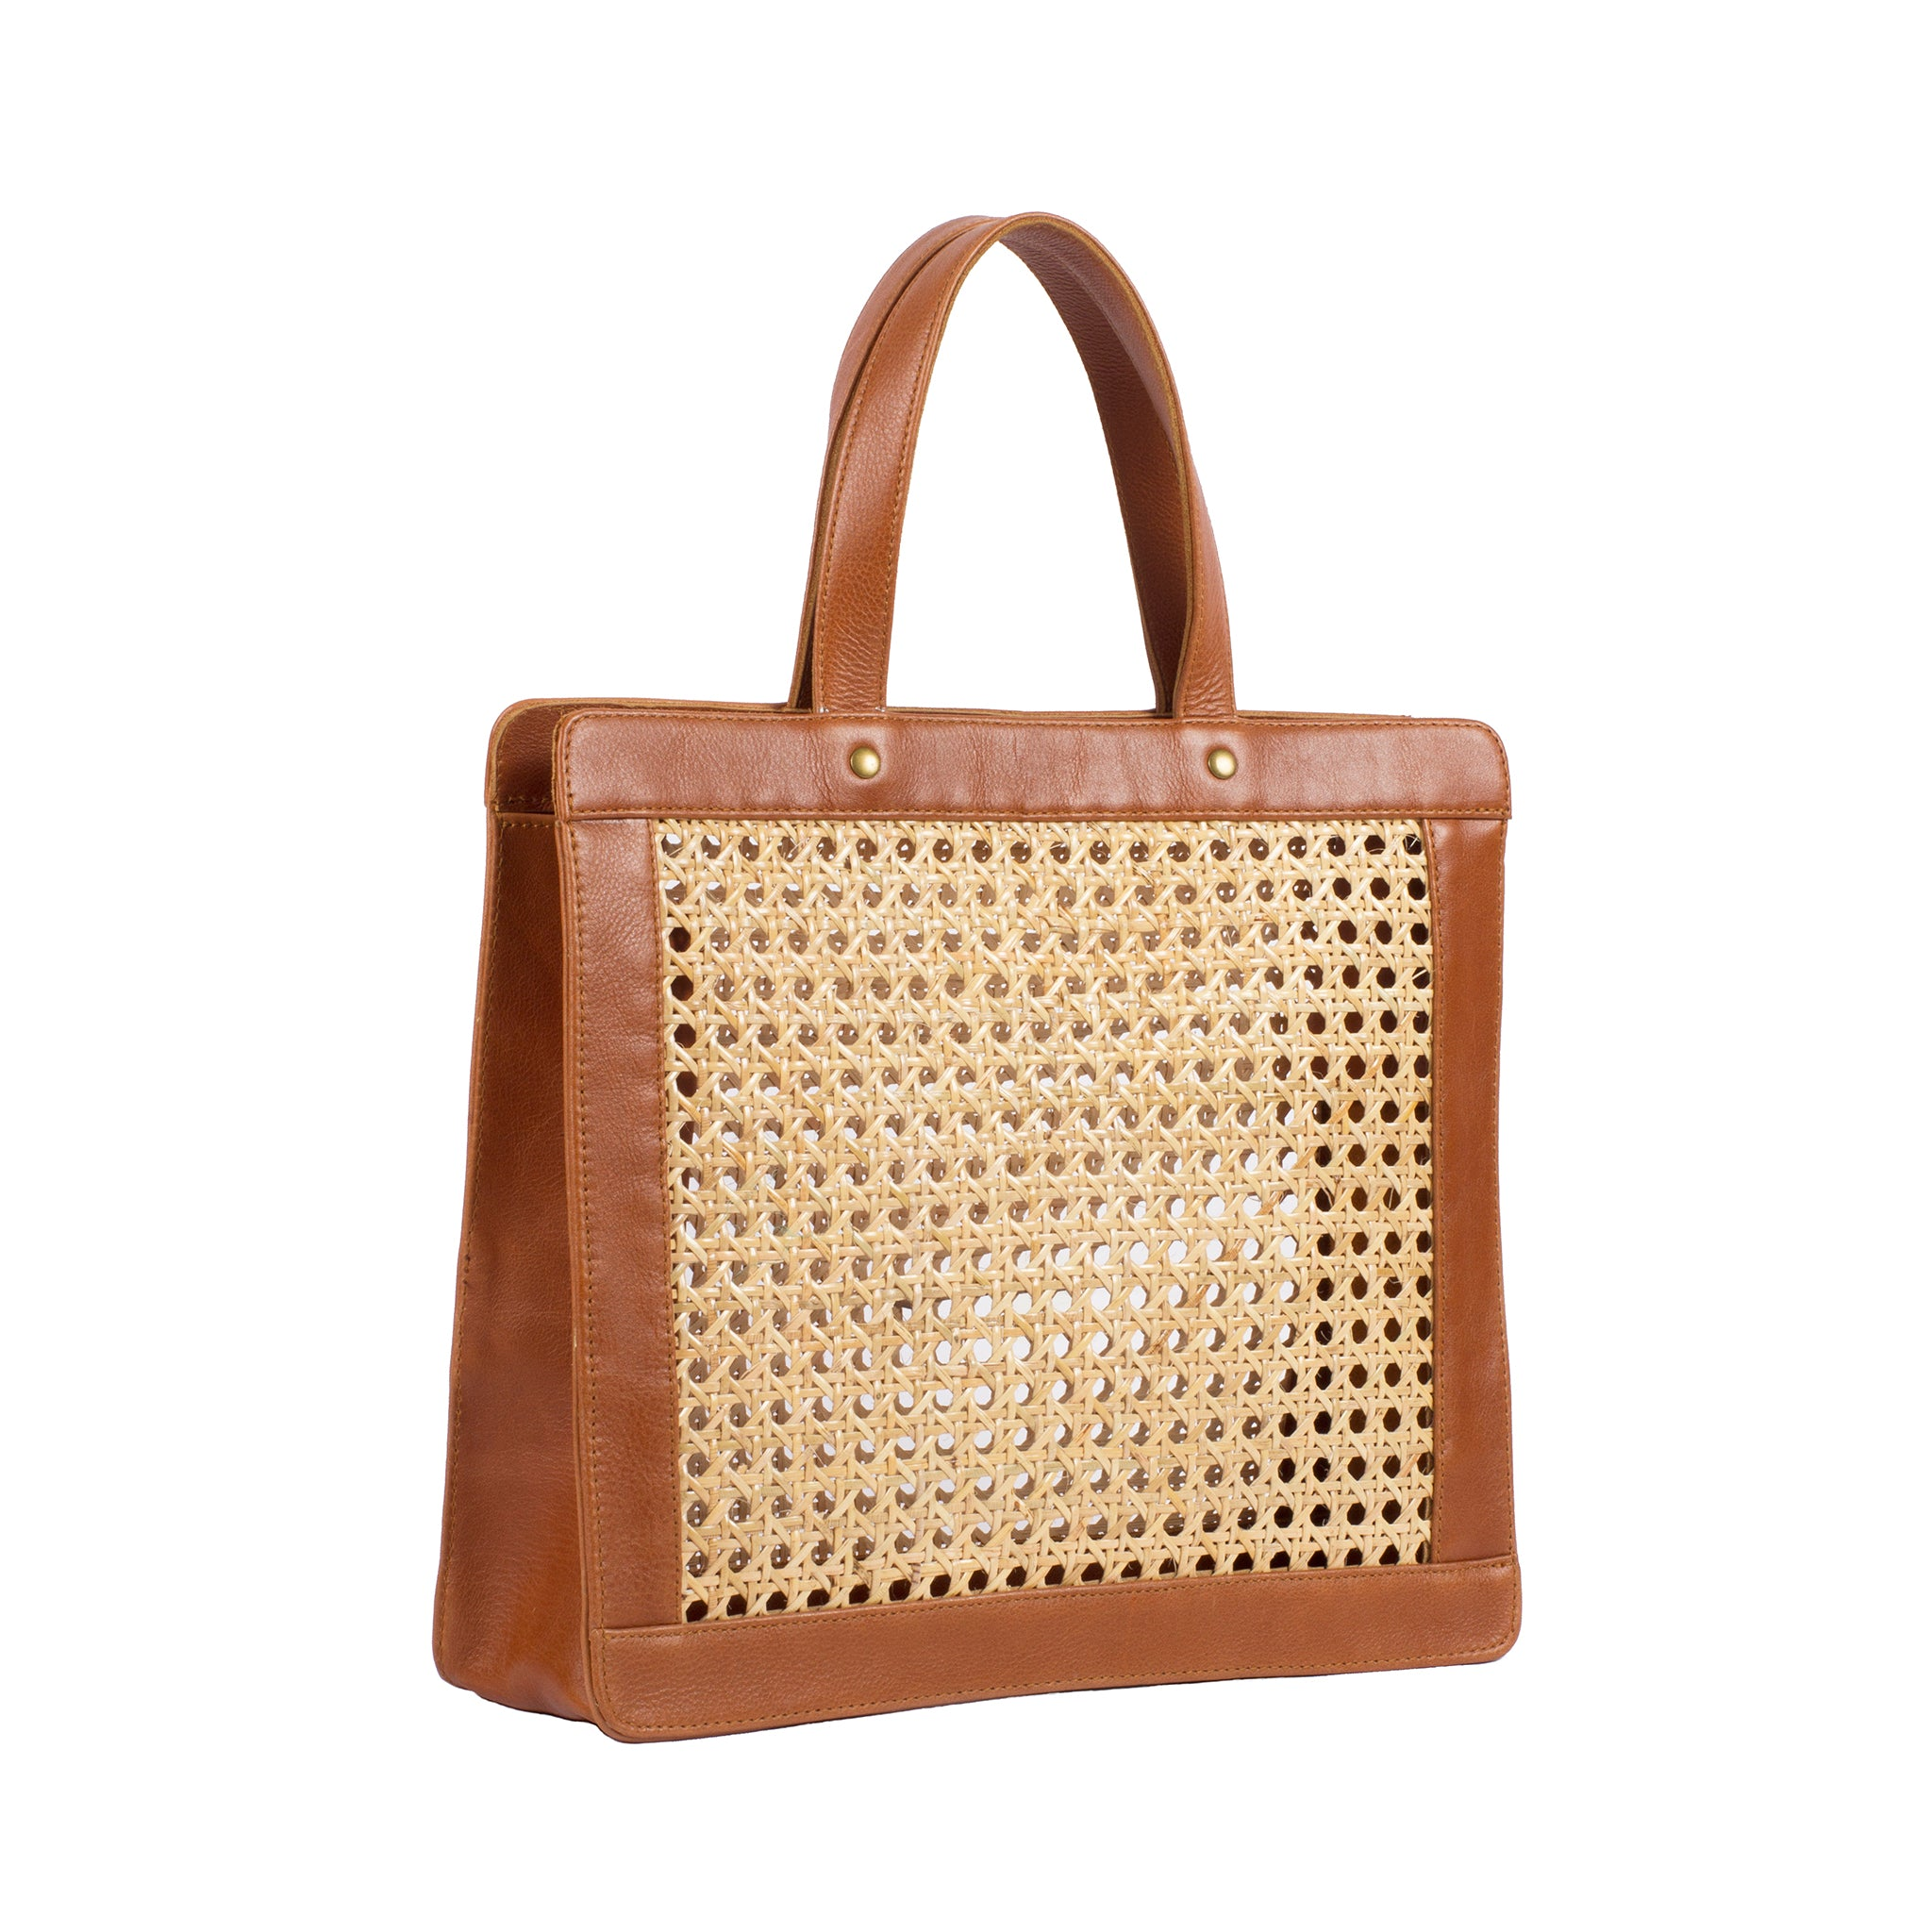 Wicker and Leather Bag; Summer Handbags 2019; Woman Leather Handbag; Tan Wicker and Leather Bag; Tan Rattan and Leather Bag; Shoulder Bags; Tote; Tan Tote